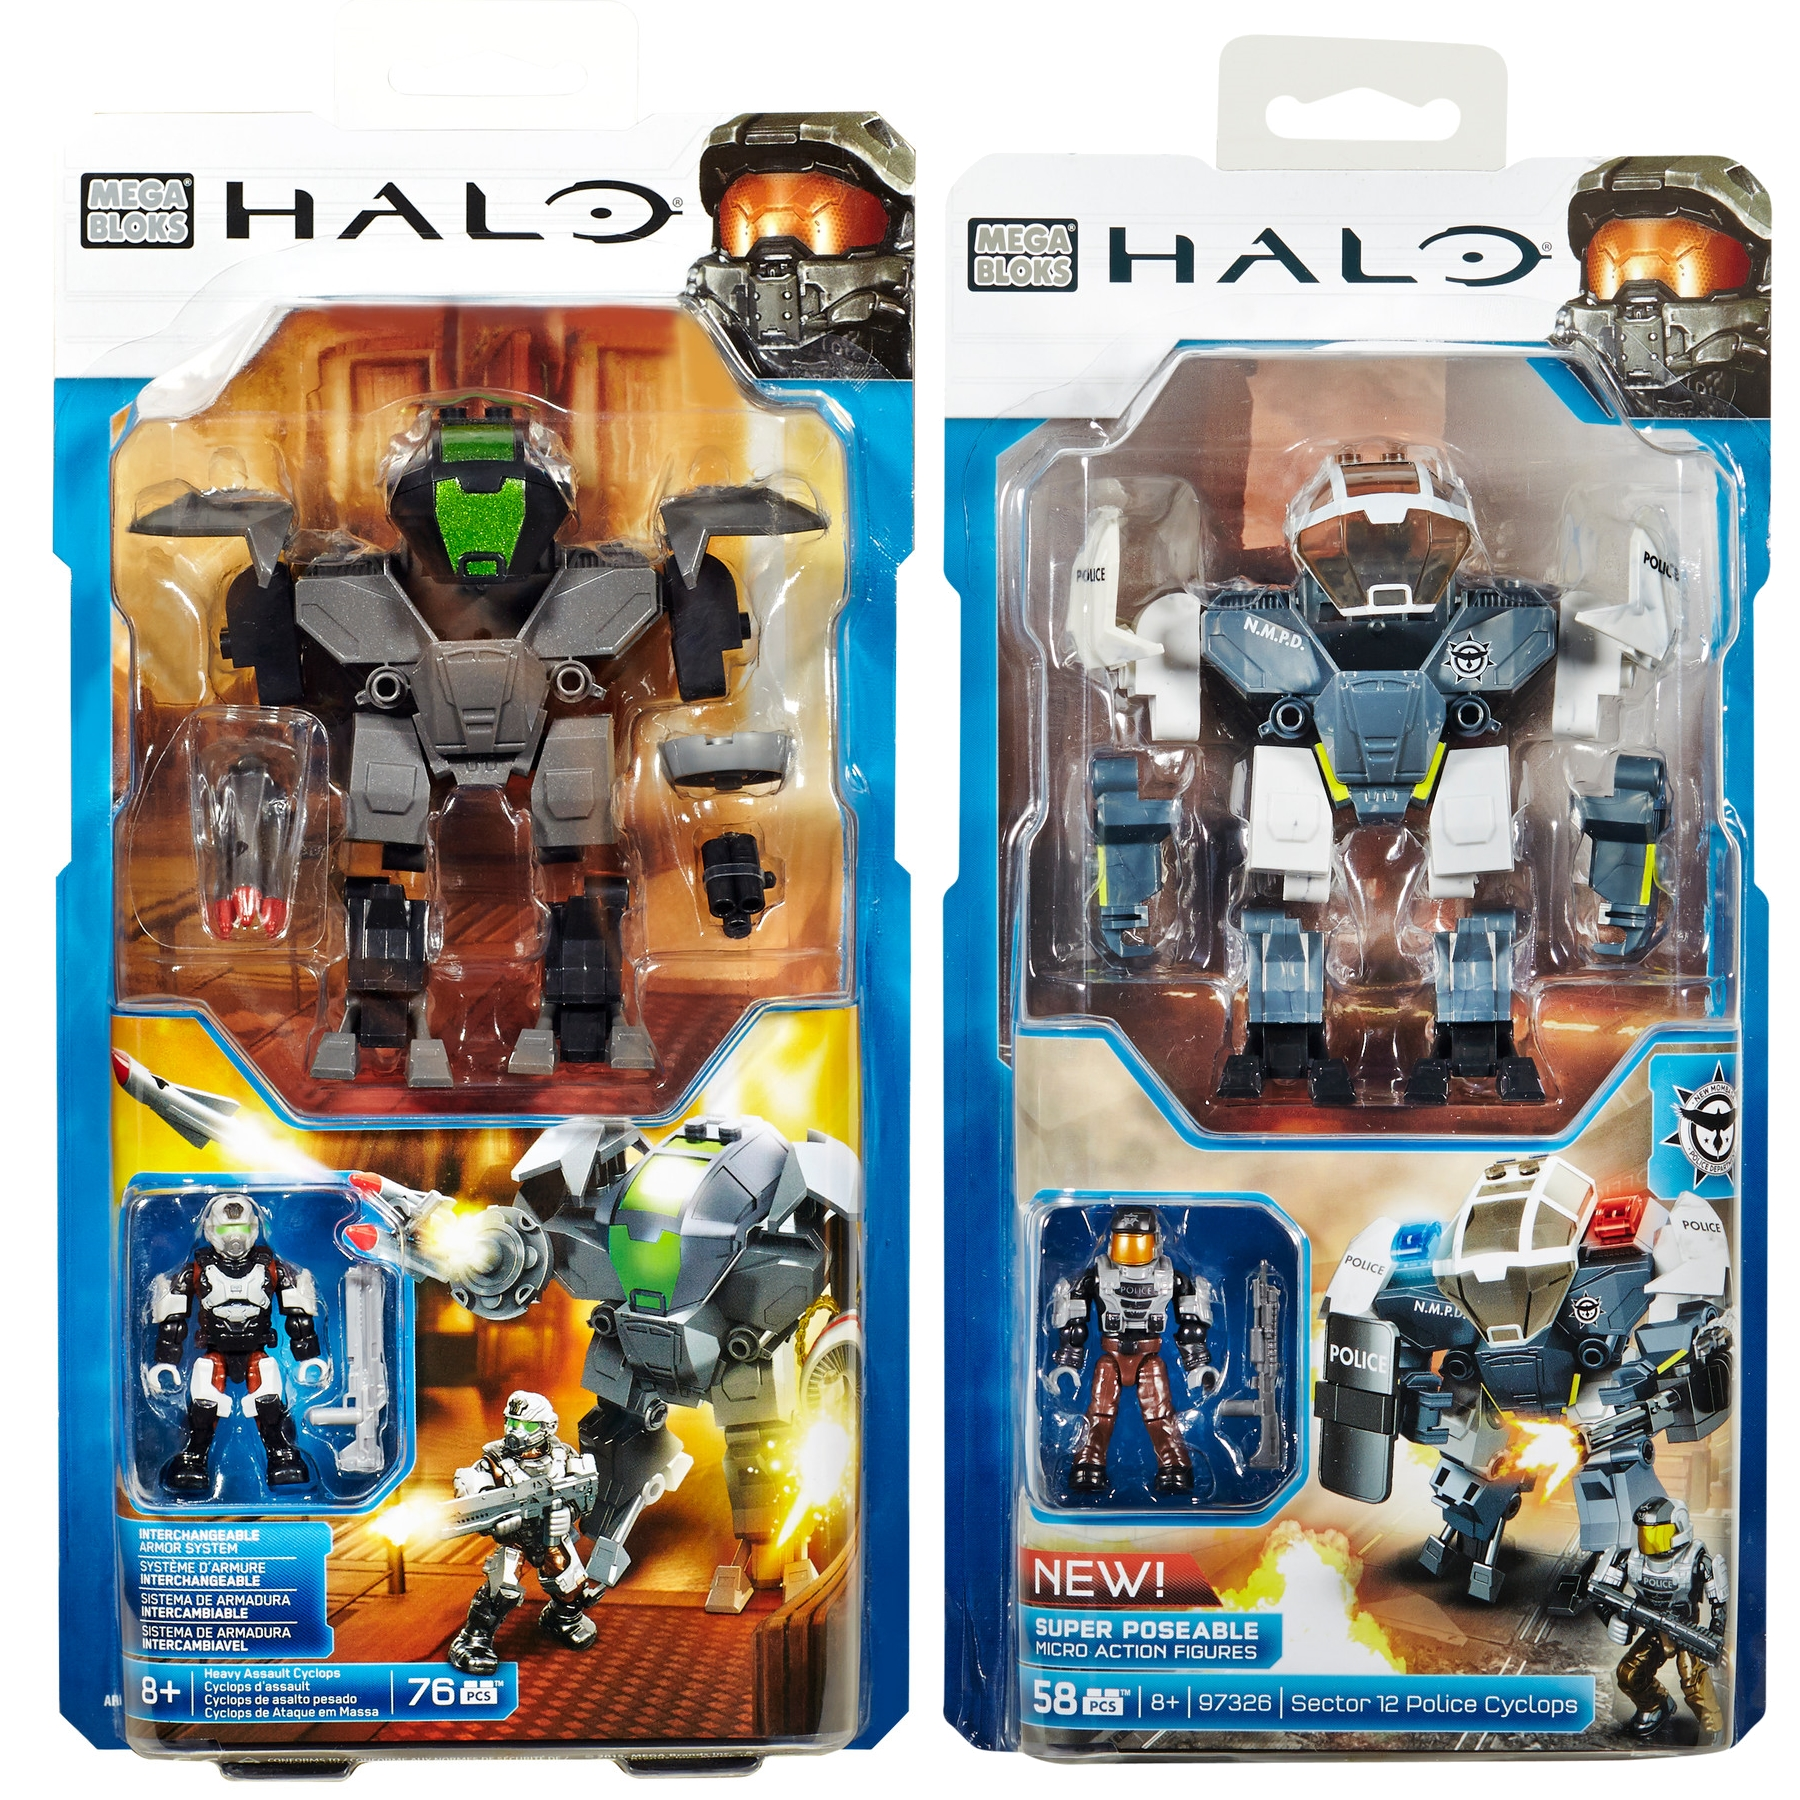 2015 Halo Mega Bloks <b>Heavy Assault Cyclops & Sector 12 Police Cyclops</b> is an officially licensed, authentic Mega Bloks Halo product at B.A. Toys featuring Heavy Assault Cyclops & Sector 12 Police Cyclops by Mega Bloks Halo